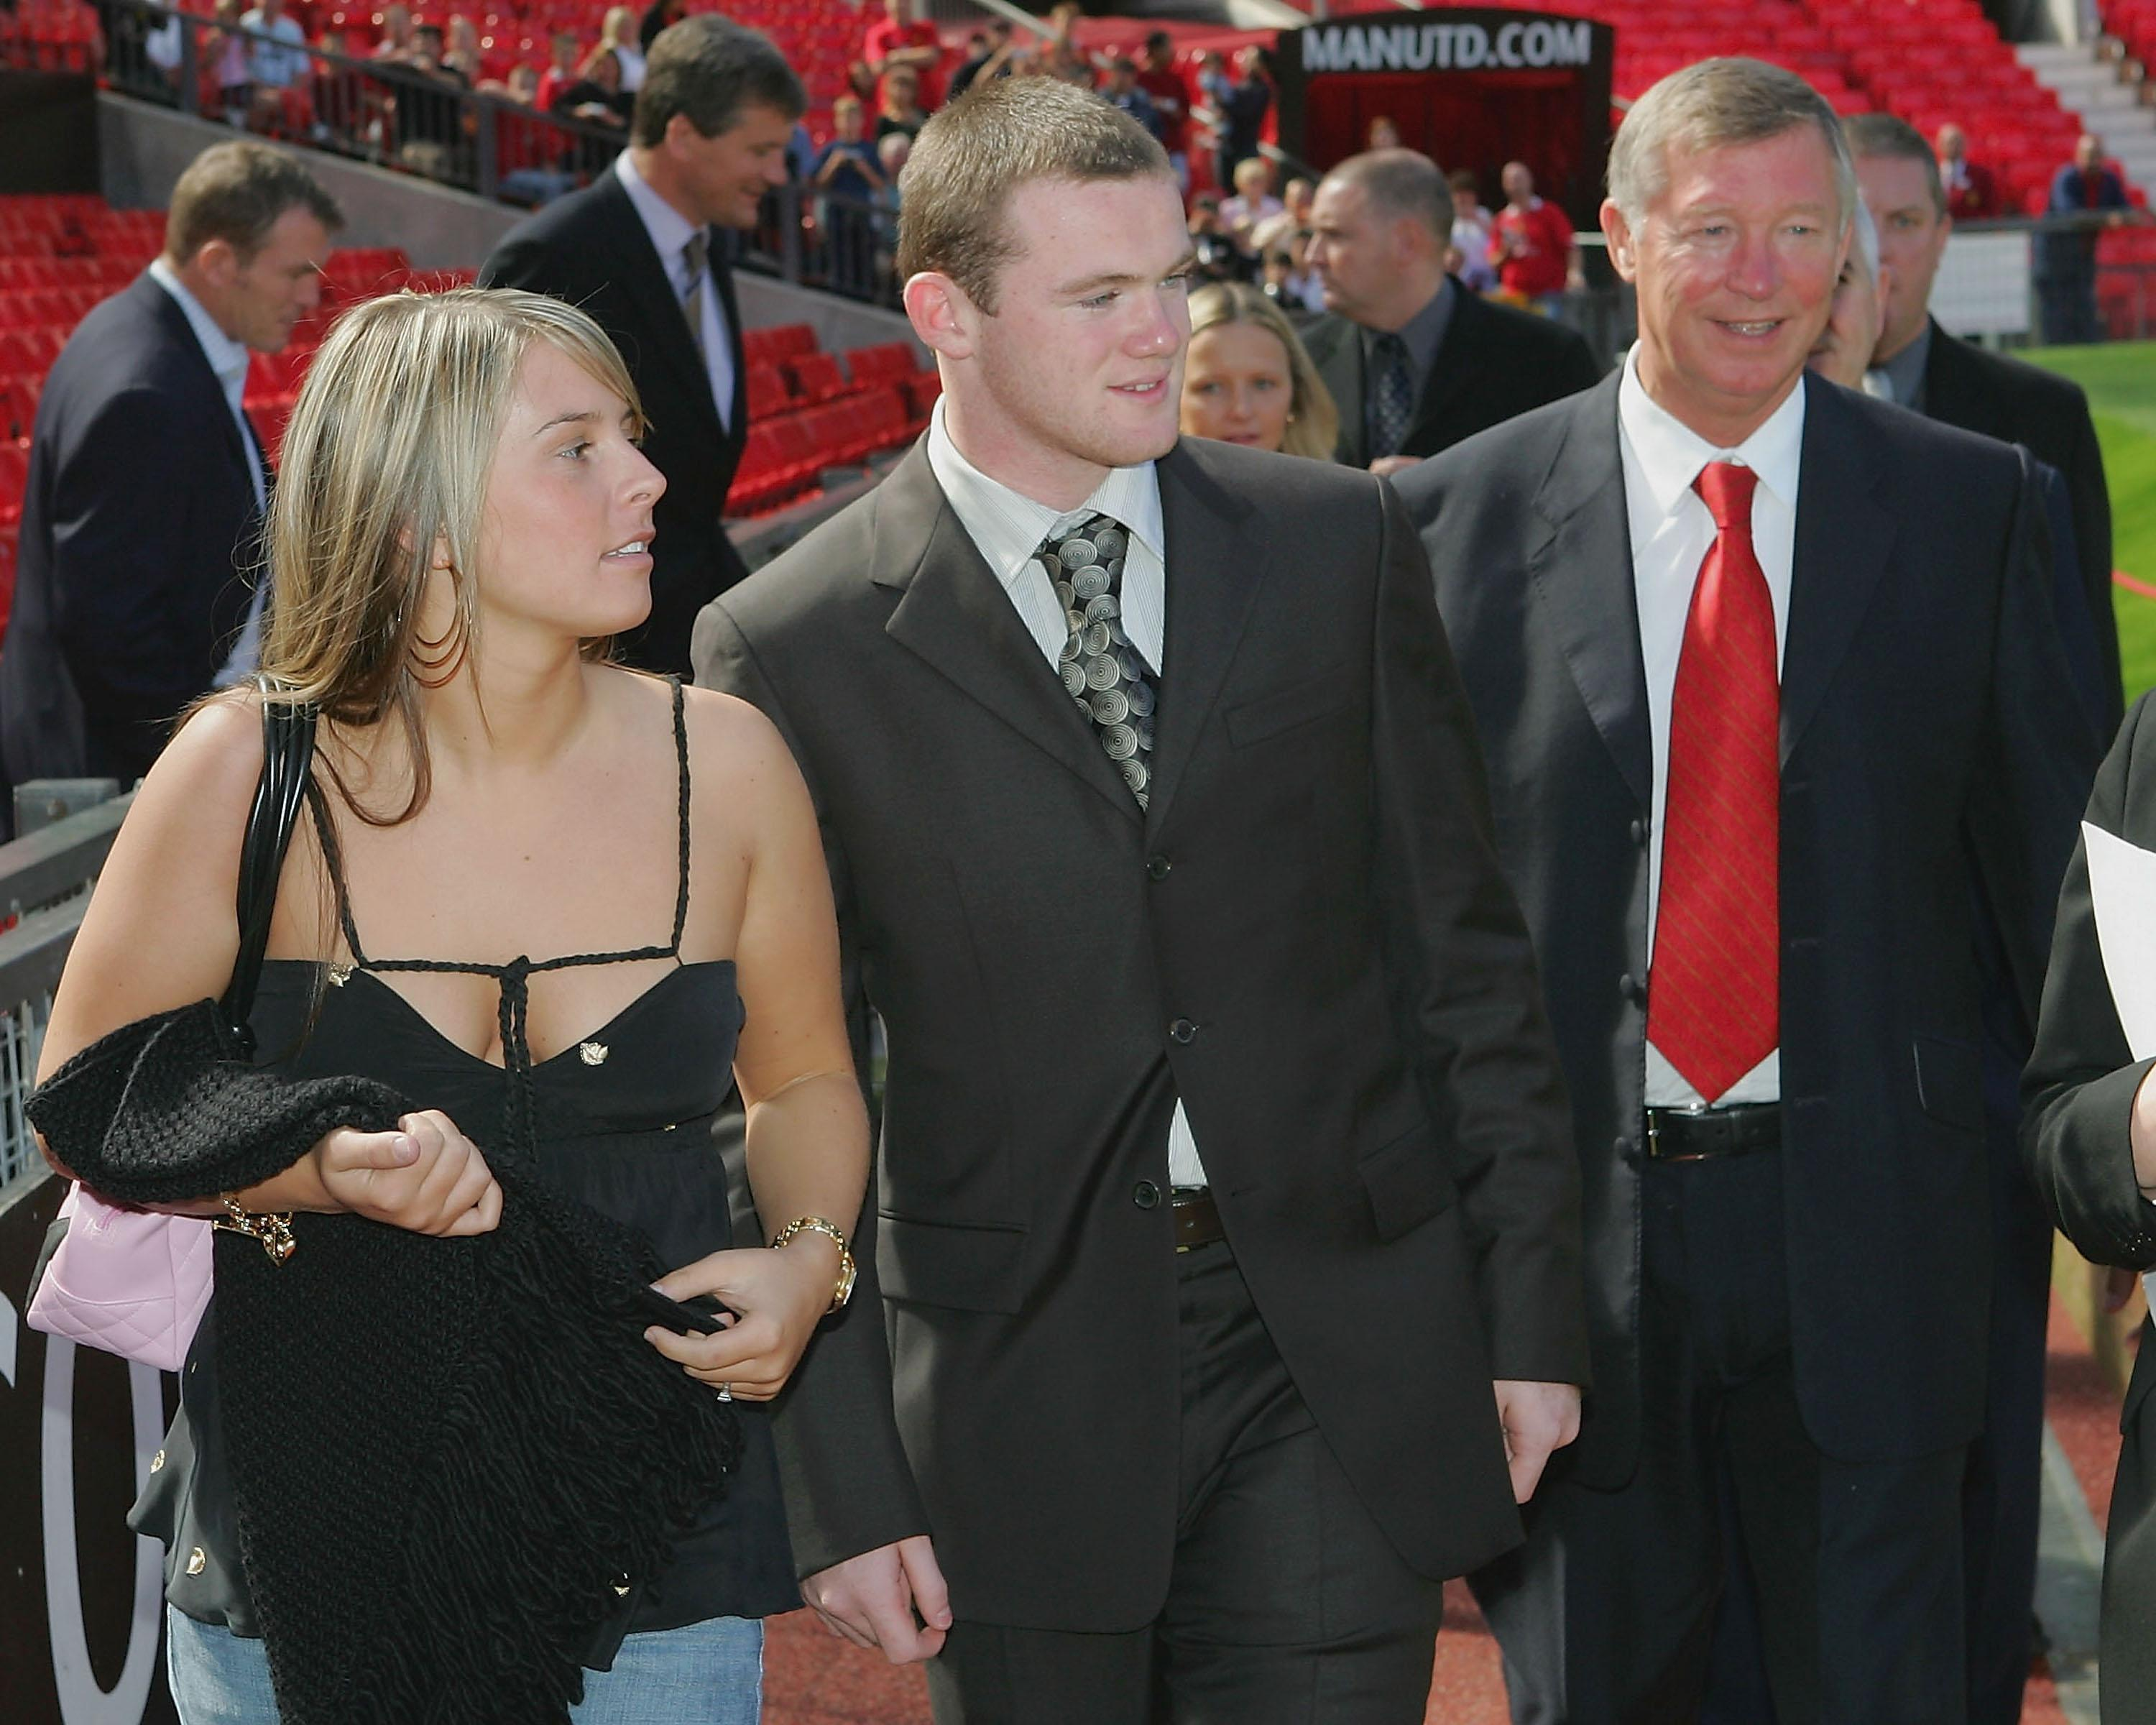 Coleen was alongside Roo when he signed for Manchester United